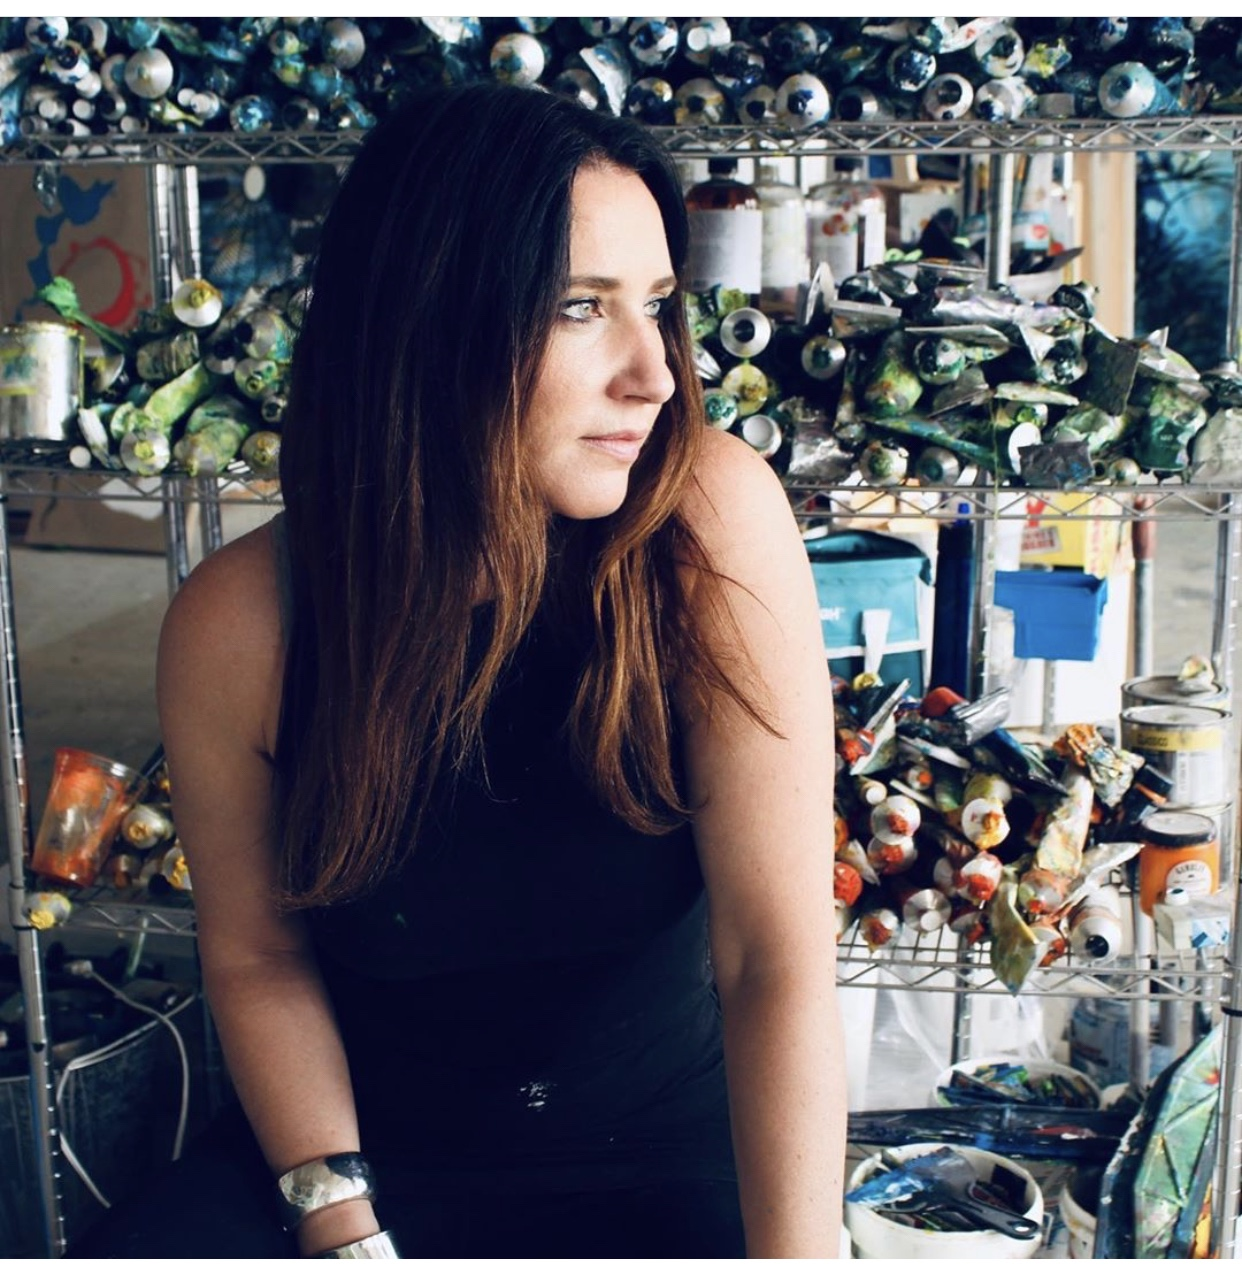 Originally from Newport Rhode Island, visual artist Mia Tarducci moved to Pittsburgh in her early 20s where she continues to live and work. She is known for working on a massive scale (In 2018 the industrial building that houses her studio allowed her to cut a hole in the exterior wall to move a painting to its destination) utilizing a color-driven abstract expressionist style, minimalist abstractions, and concept-driven works. She has exhibited throughout the US and most recently was highlighted in an open air exhibition along the Thames in London. She is in private and corporate collections throughout the world with notable clients including an NFL owner, PNC bank, Children's MuseumLab and Superior Motors (named by Time Magazine as one of the top 100 most interesting places in the world) to name a few. Currently she is working toward a solo exhibition in Palm Beach and Pittsburgh and has a massive project in the works for a major retailer in NYC. She can also be seen in Blick Artist Materials campaign for their Utrecht oil colors.